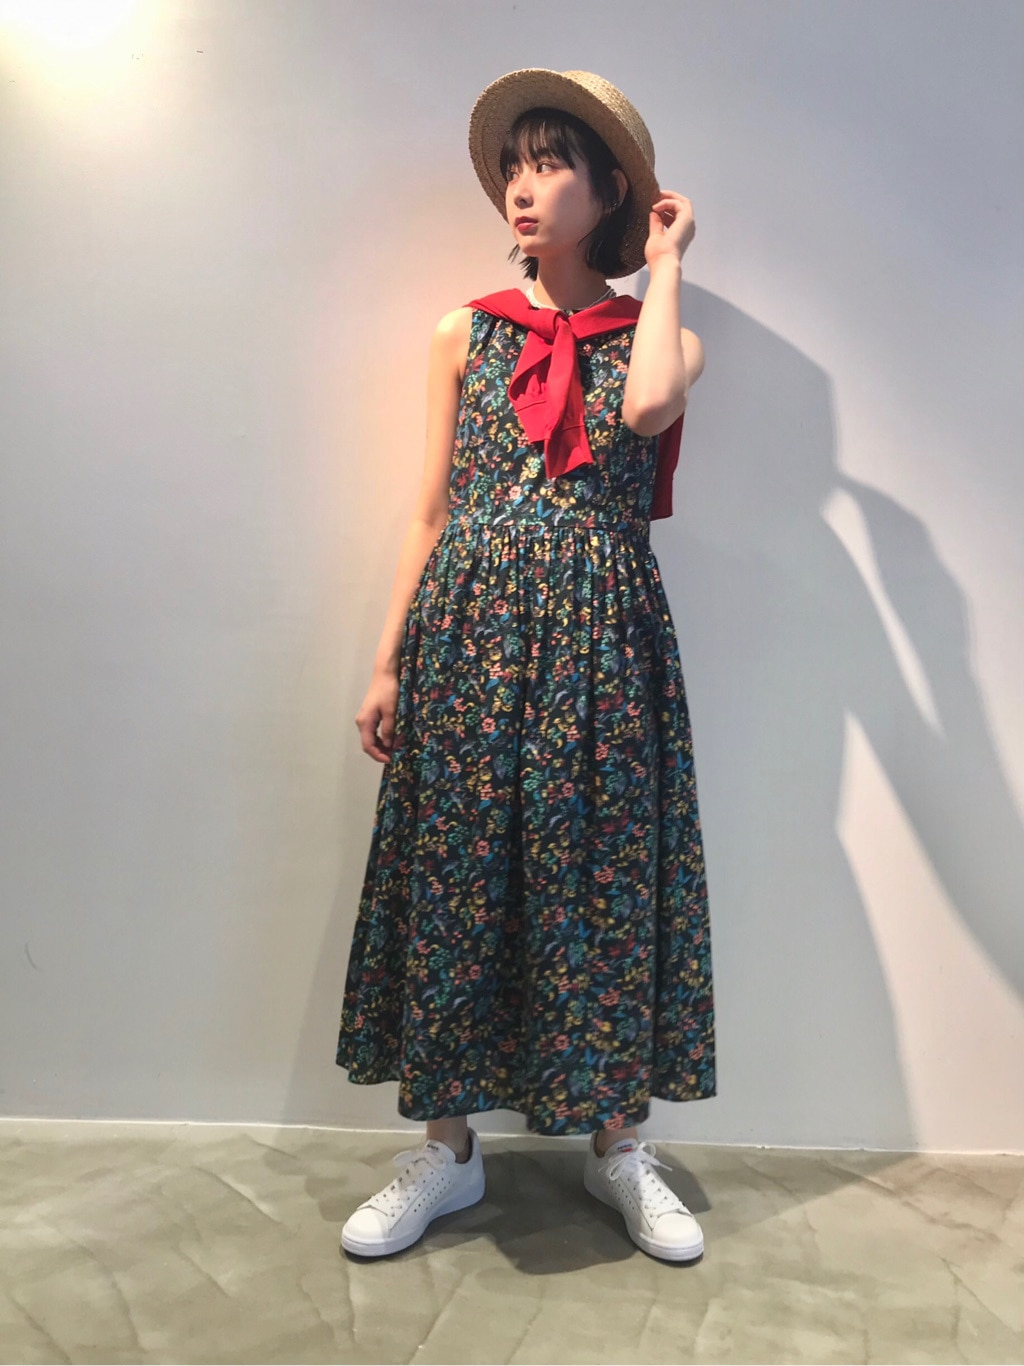 Dot and Stripes CHILD WOMAN ラフォーレ原宿 身長:158cm 2020.07.23